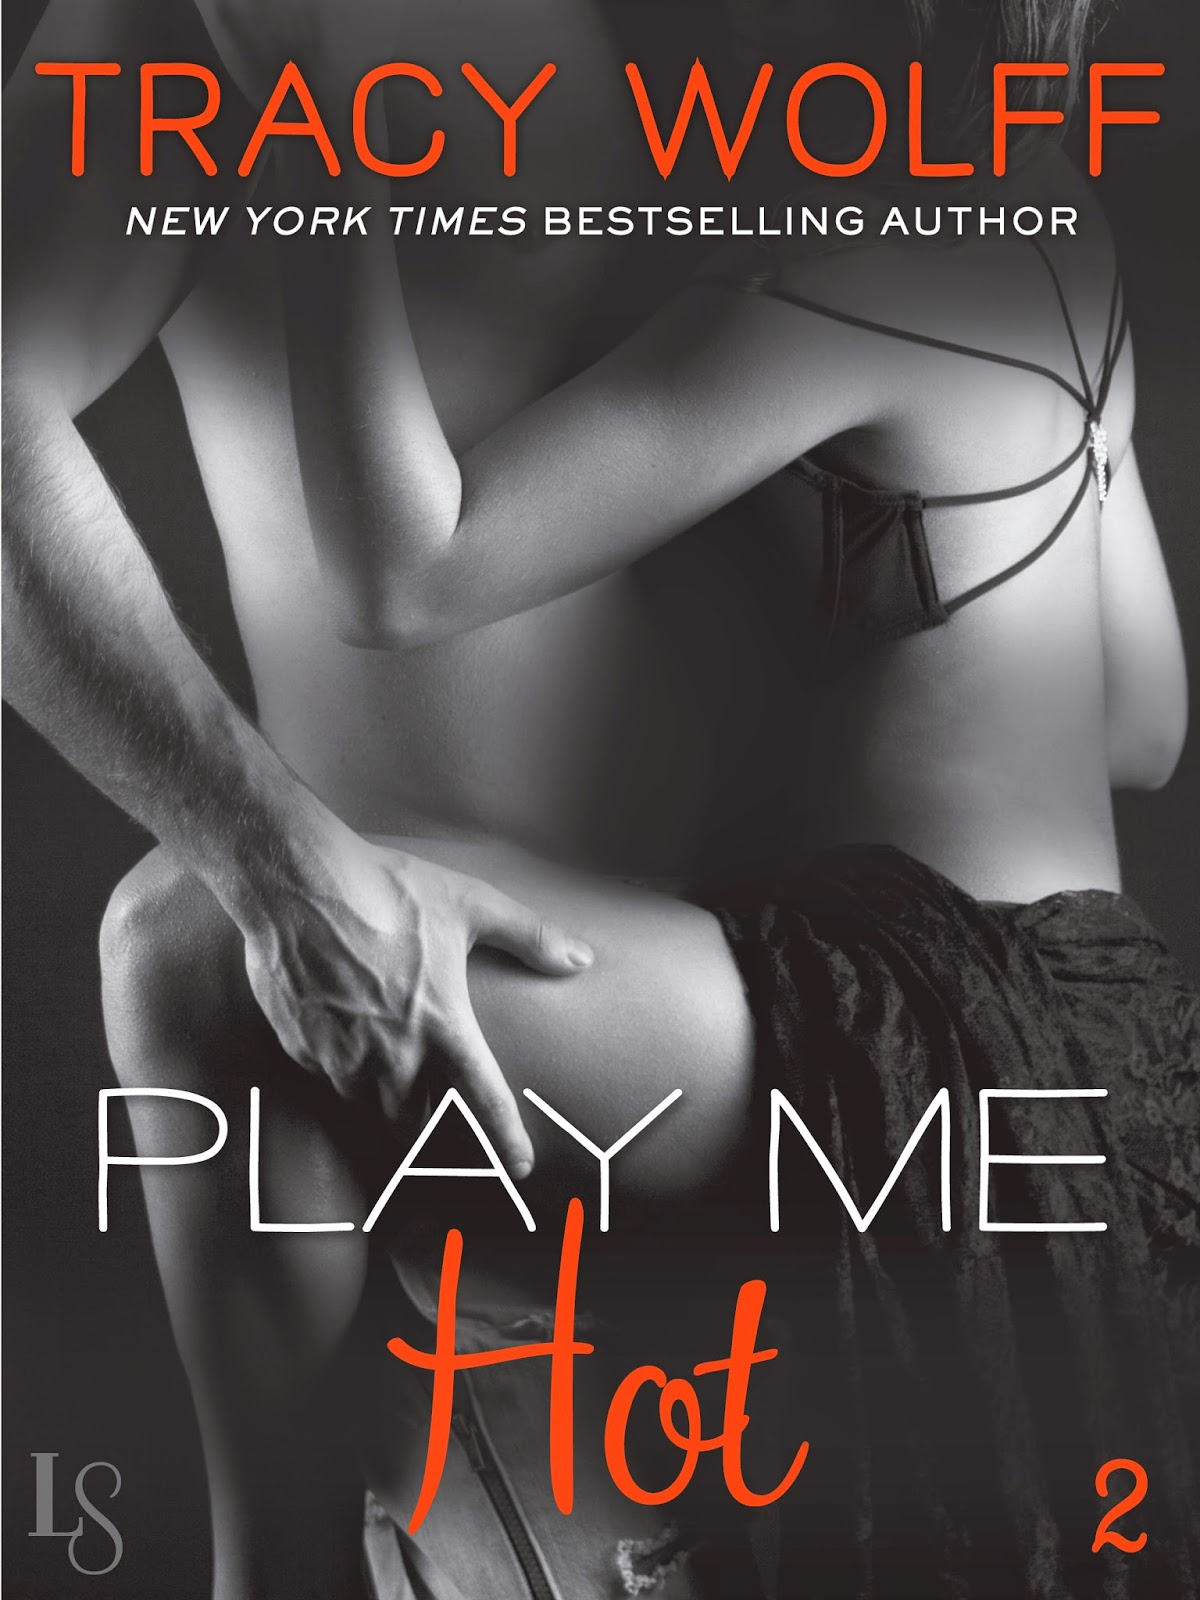 http://www.readloveswept.com/books/play-me-2-play-me-hot/